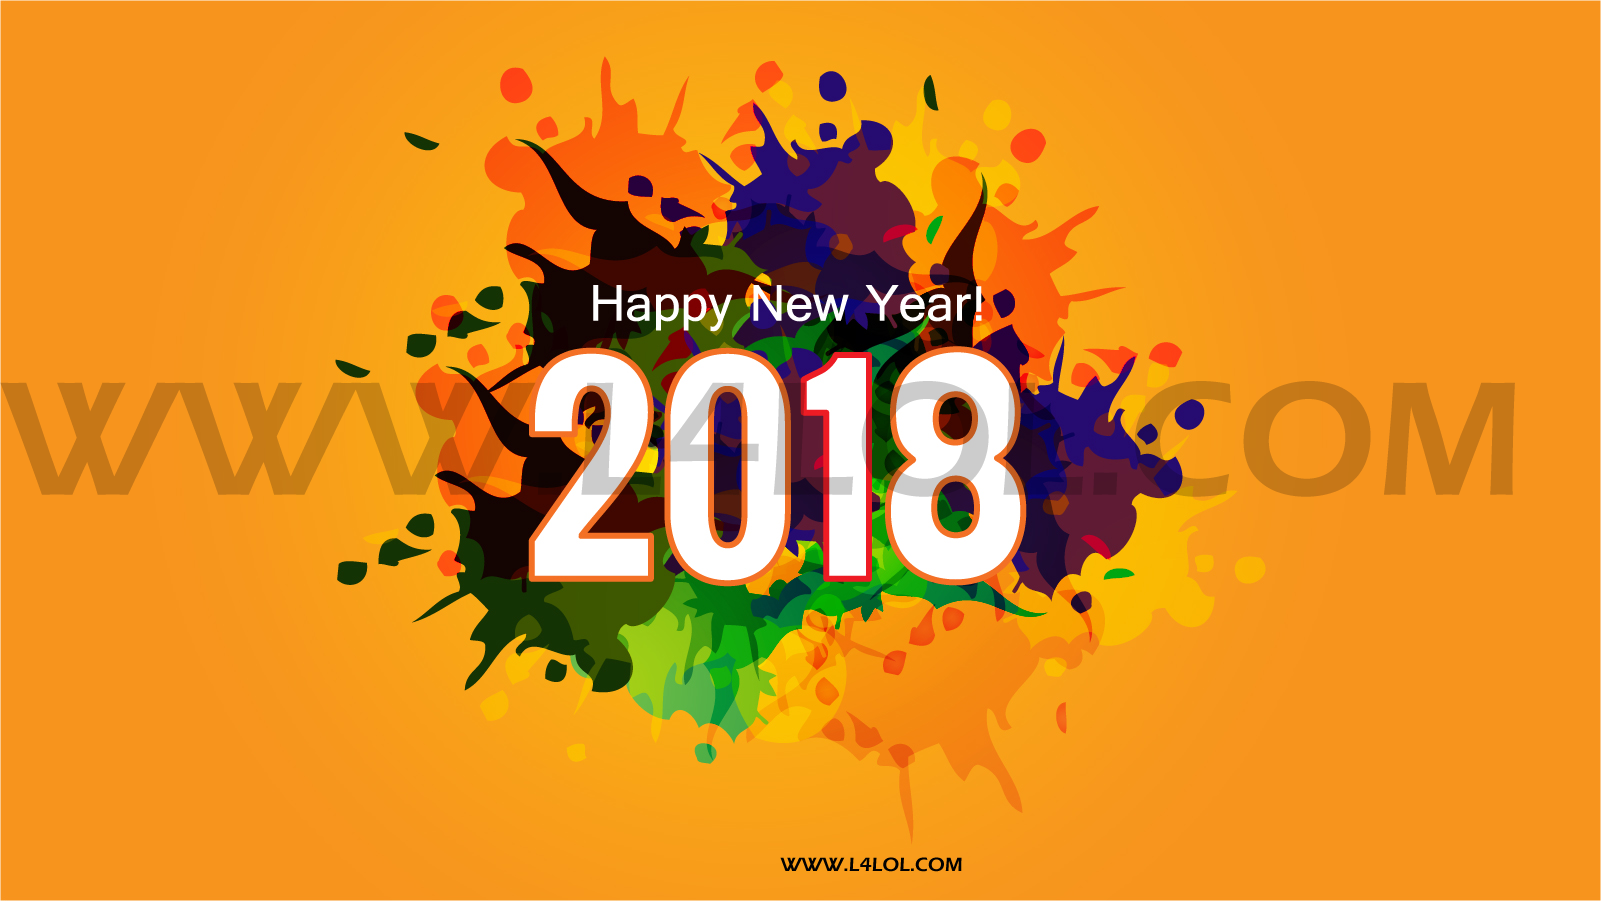 happy new year 2018 wishes quotes messages sms status for lover family parents wife hubby boy girl friends buddies kids teachers mother father